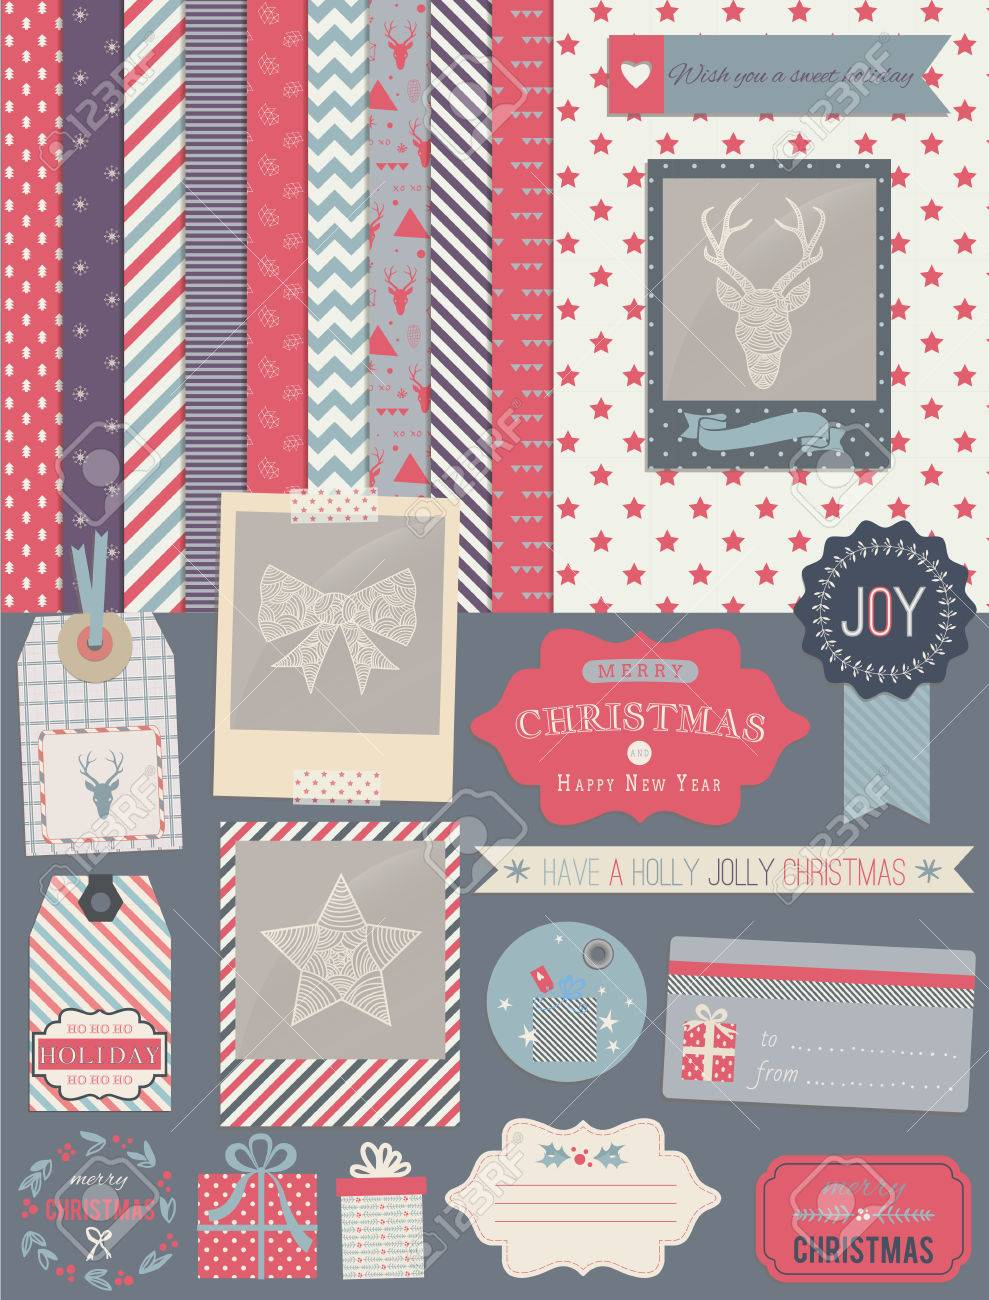 Scrapbook Design Elements Christmas Decorations Frames Ribbon